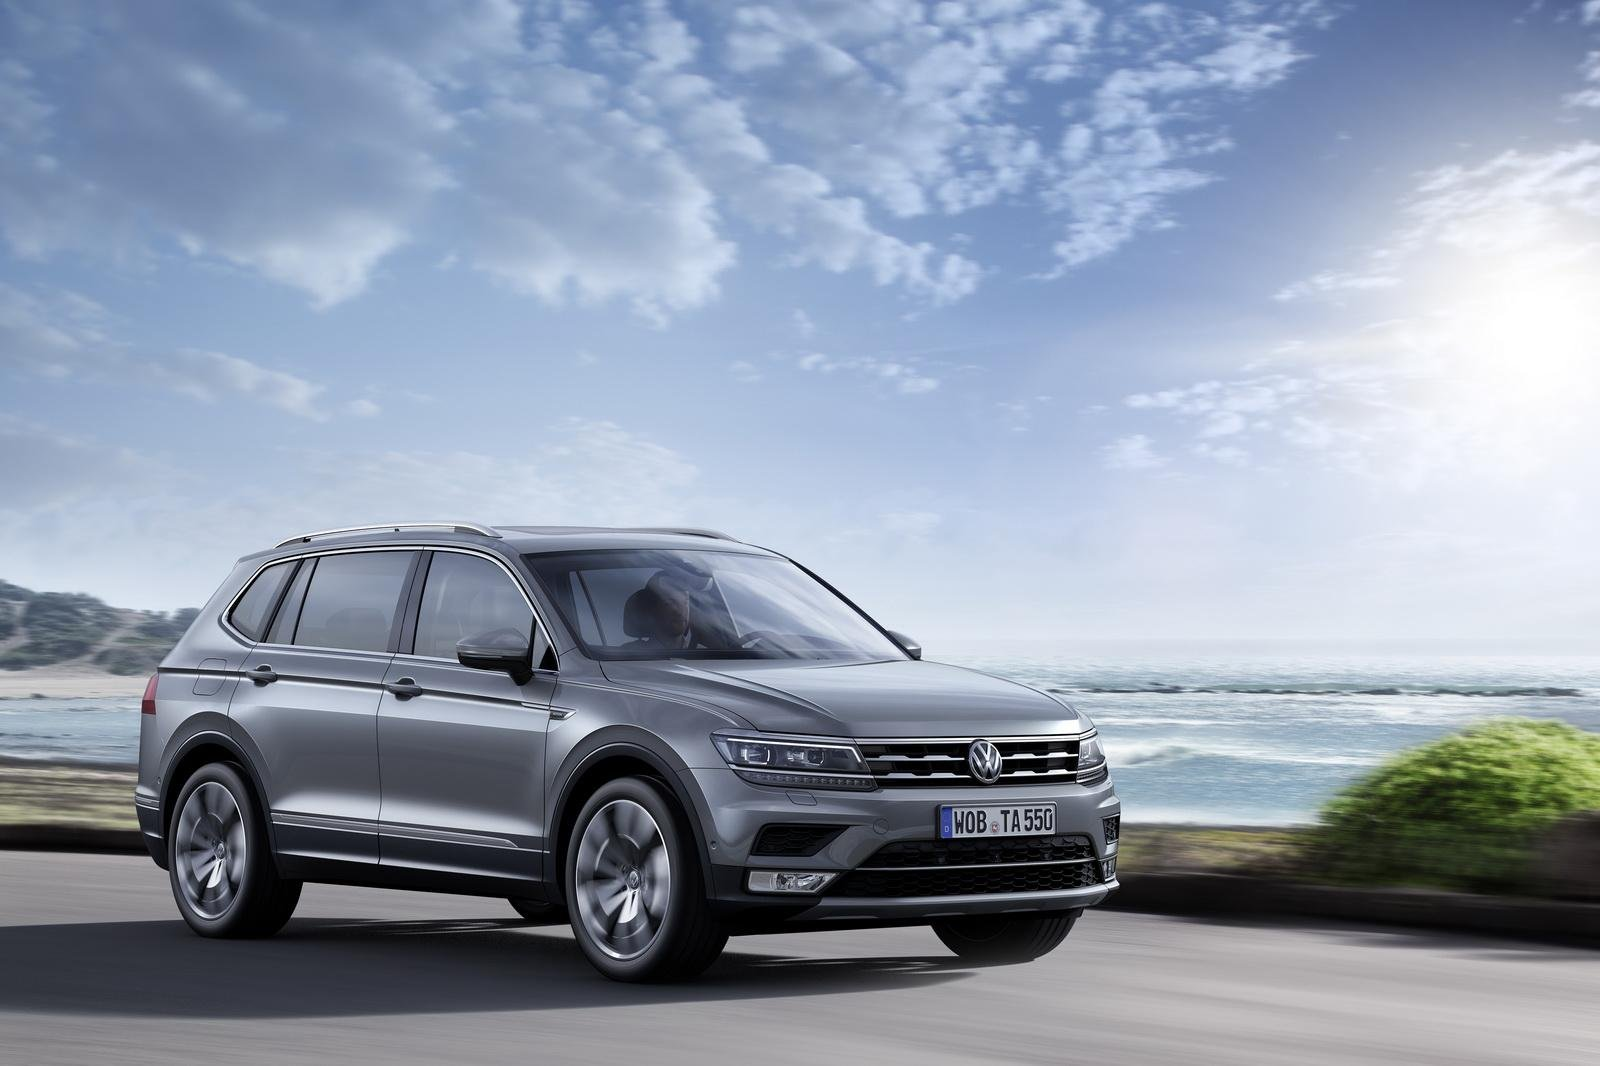 Here Are The 4 New SUVs Volkswagen Is Launching In India This Year